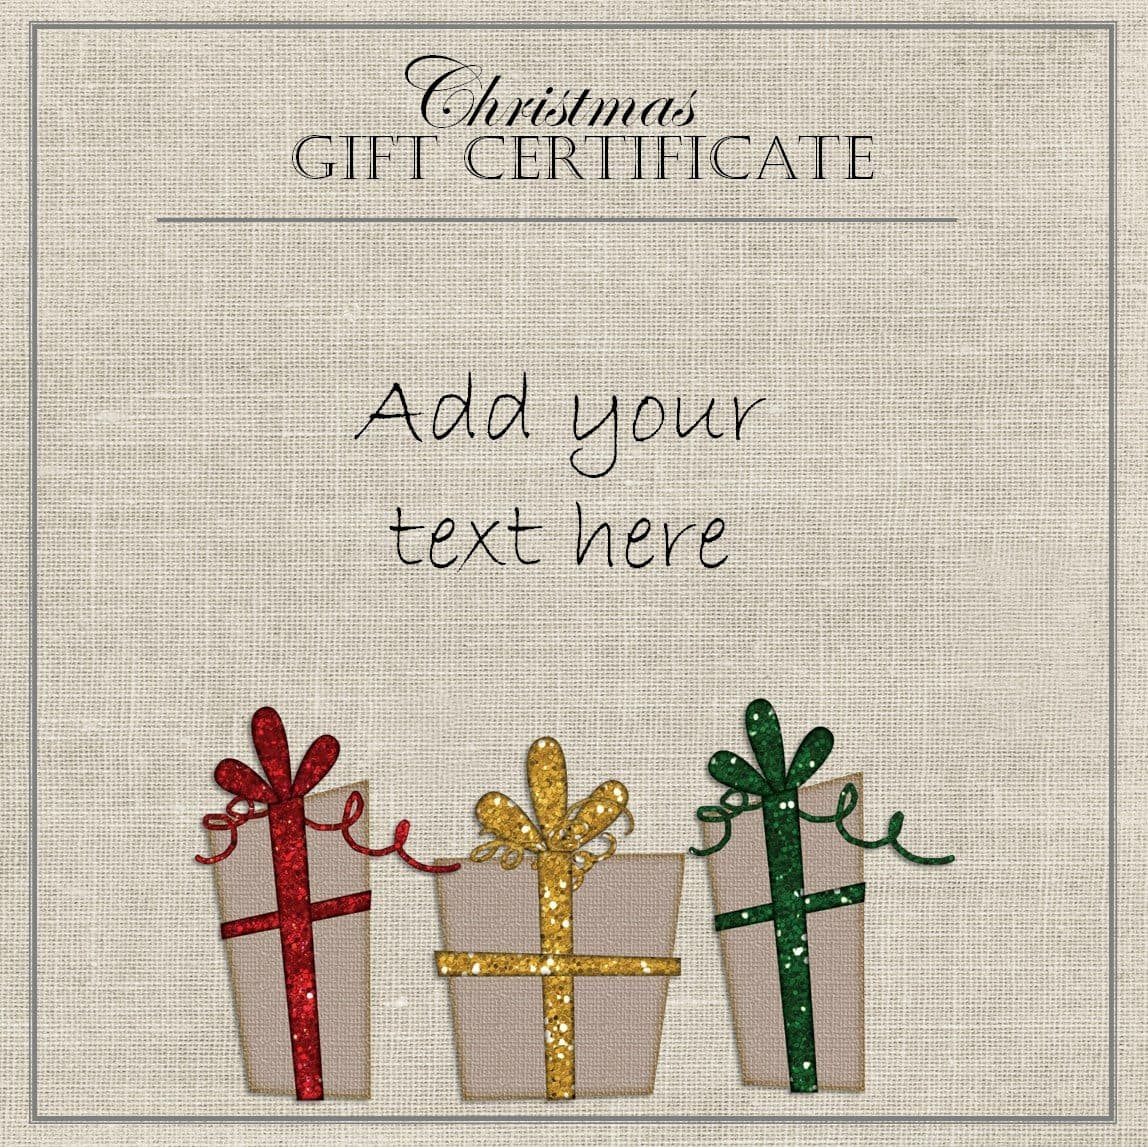 Free christmas gift certificate template customize online download elegant gift certificate template with three gifts with red yellow and green ribbons yelopaper Choice Image